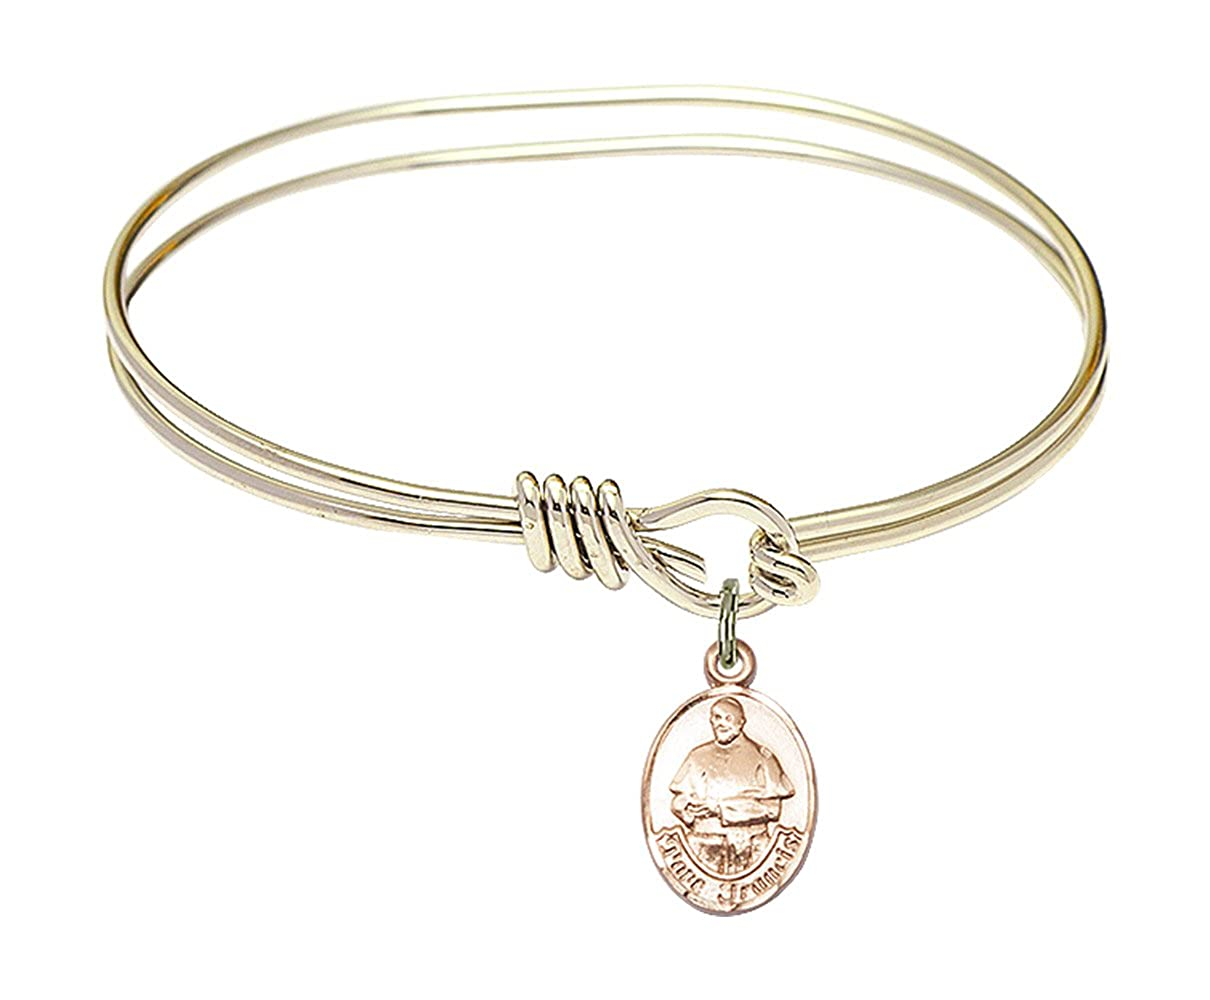 DiamondJewelryNY Eye Hook Bangle Bracelet with a Pope Francis Charm.